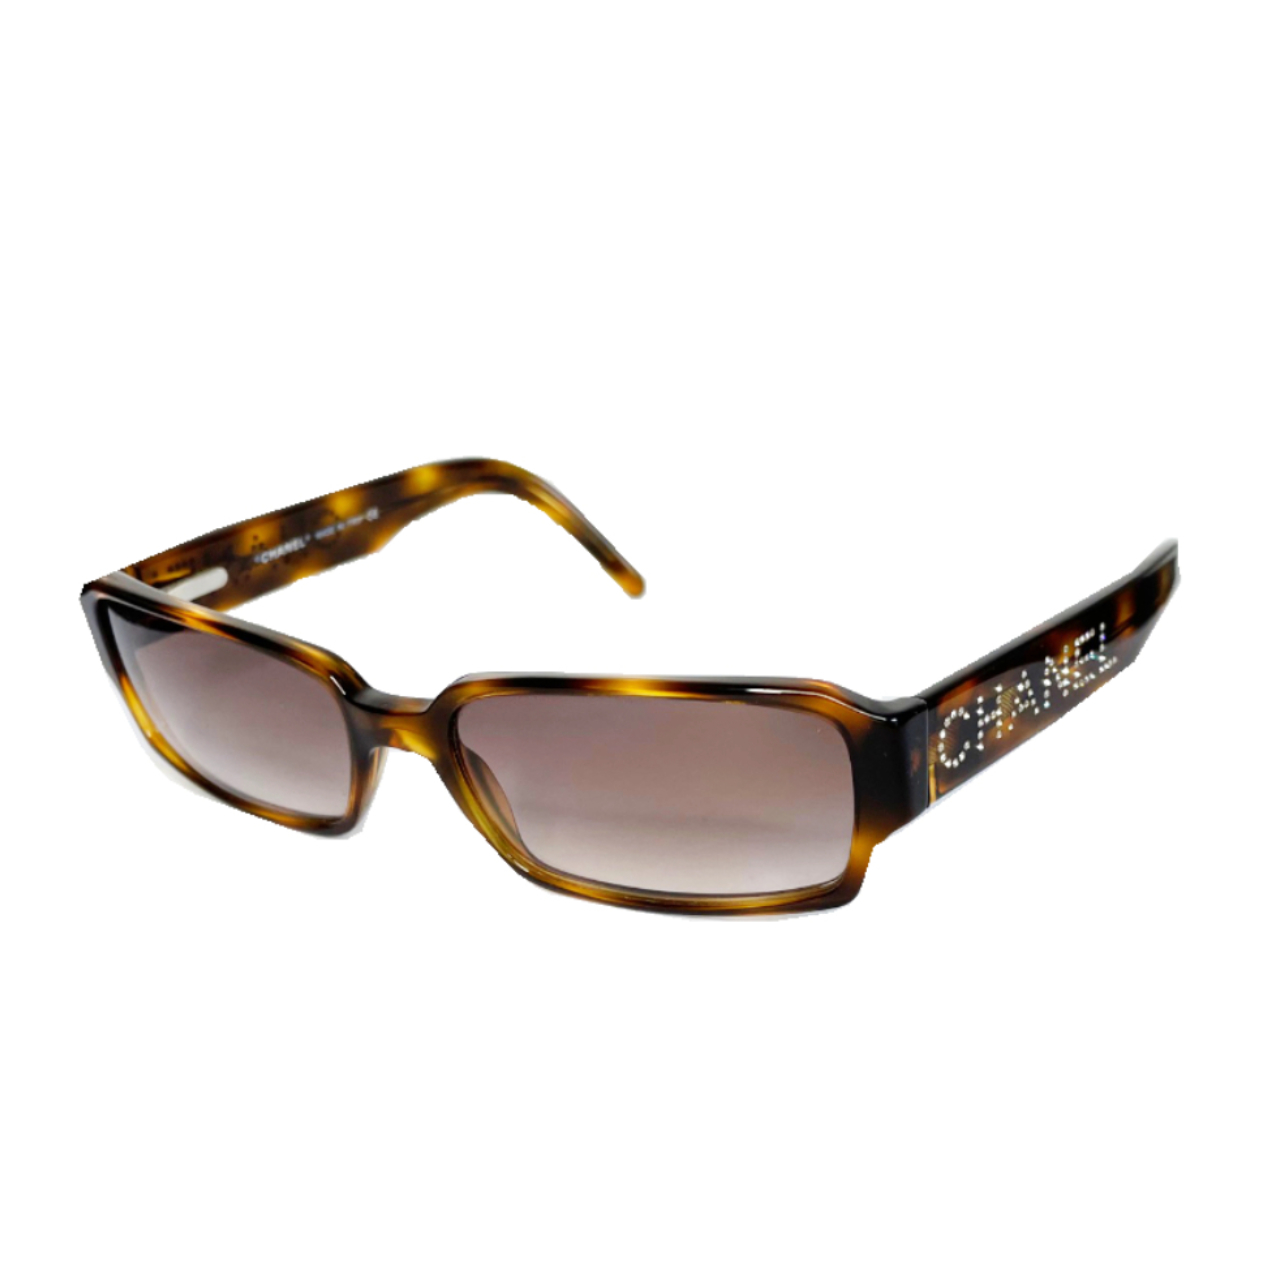 Vintage Chanel Diamante Spellout Sunglasses in Tortoiseshell Brown | NITRYL